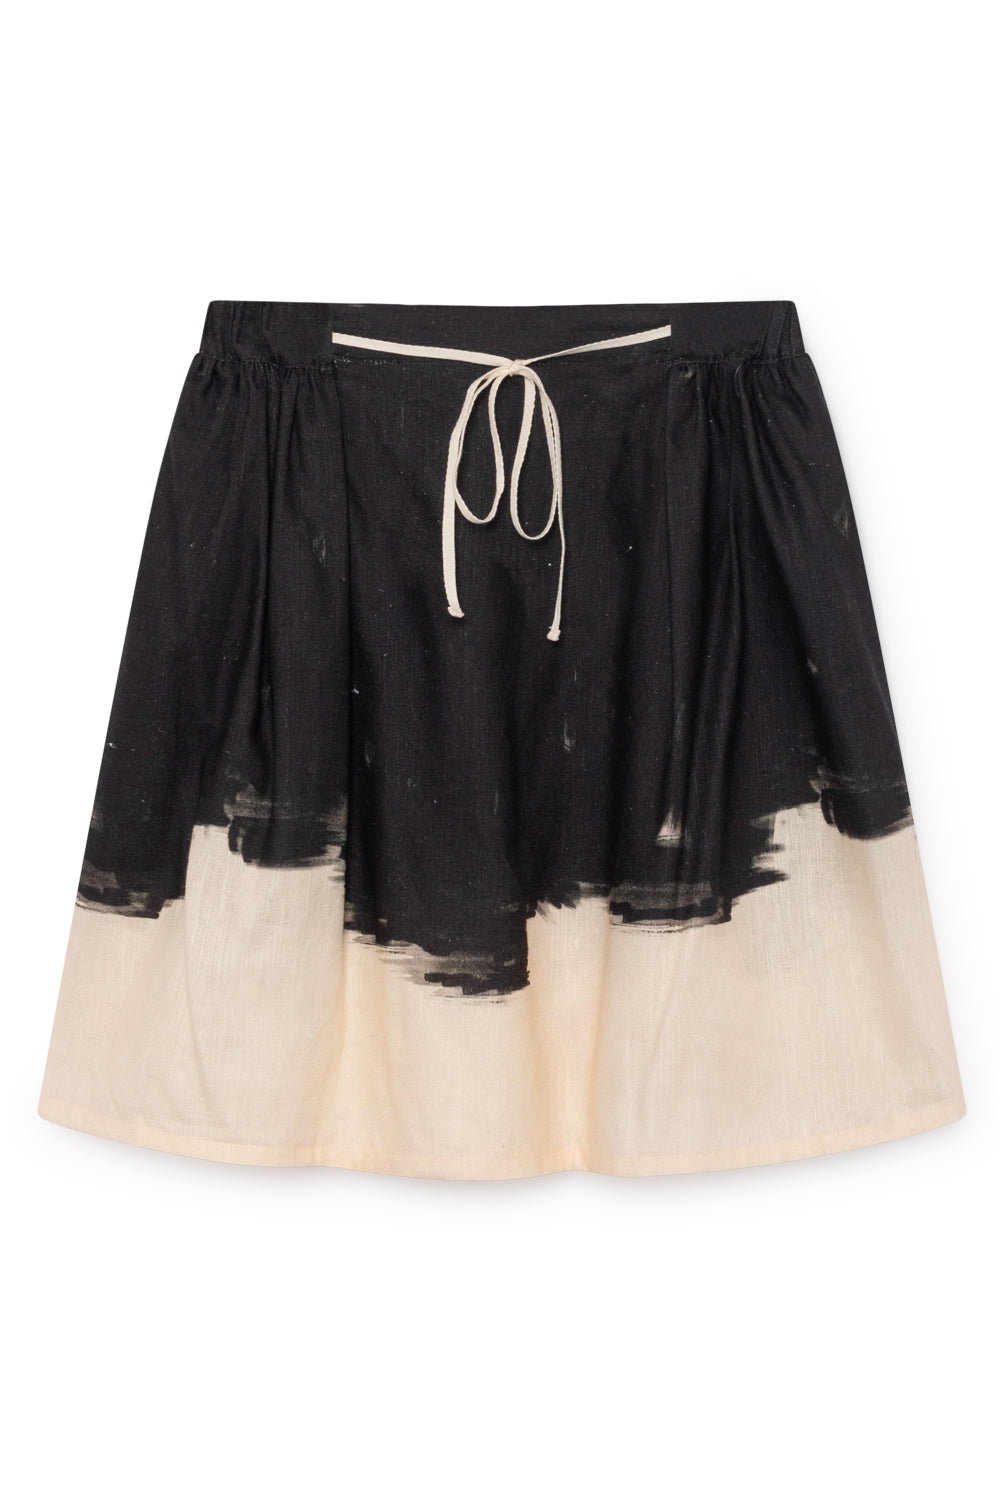 Little Creative Factory Haiku Skirt - Mini